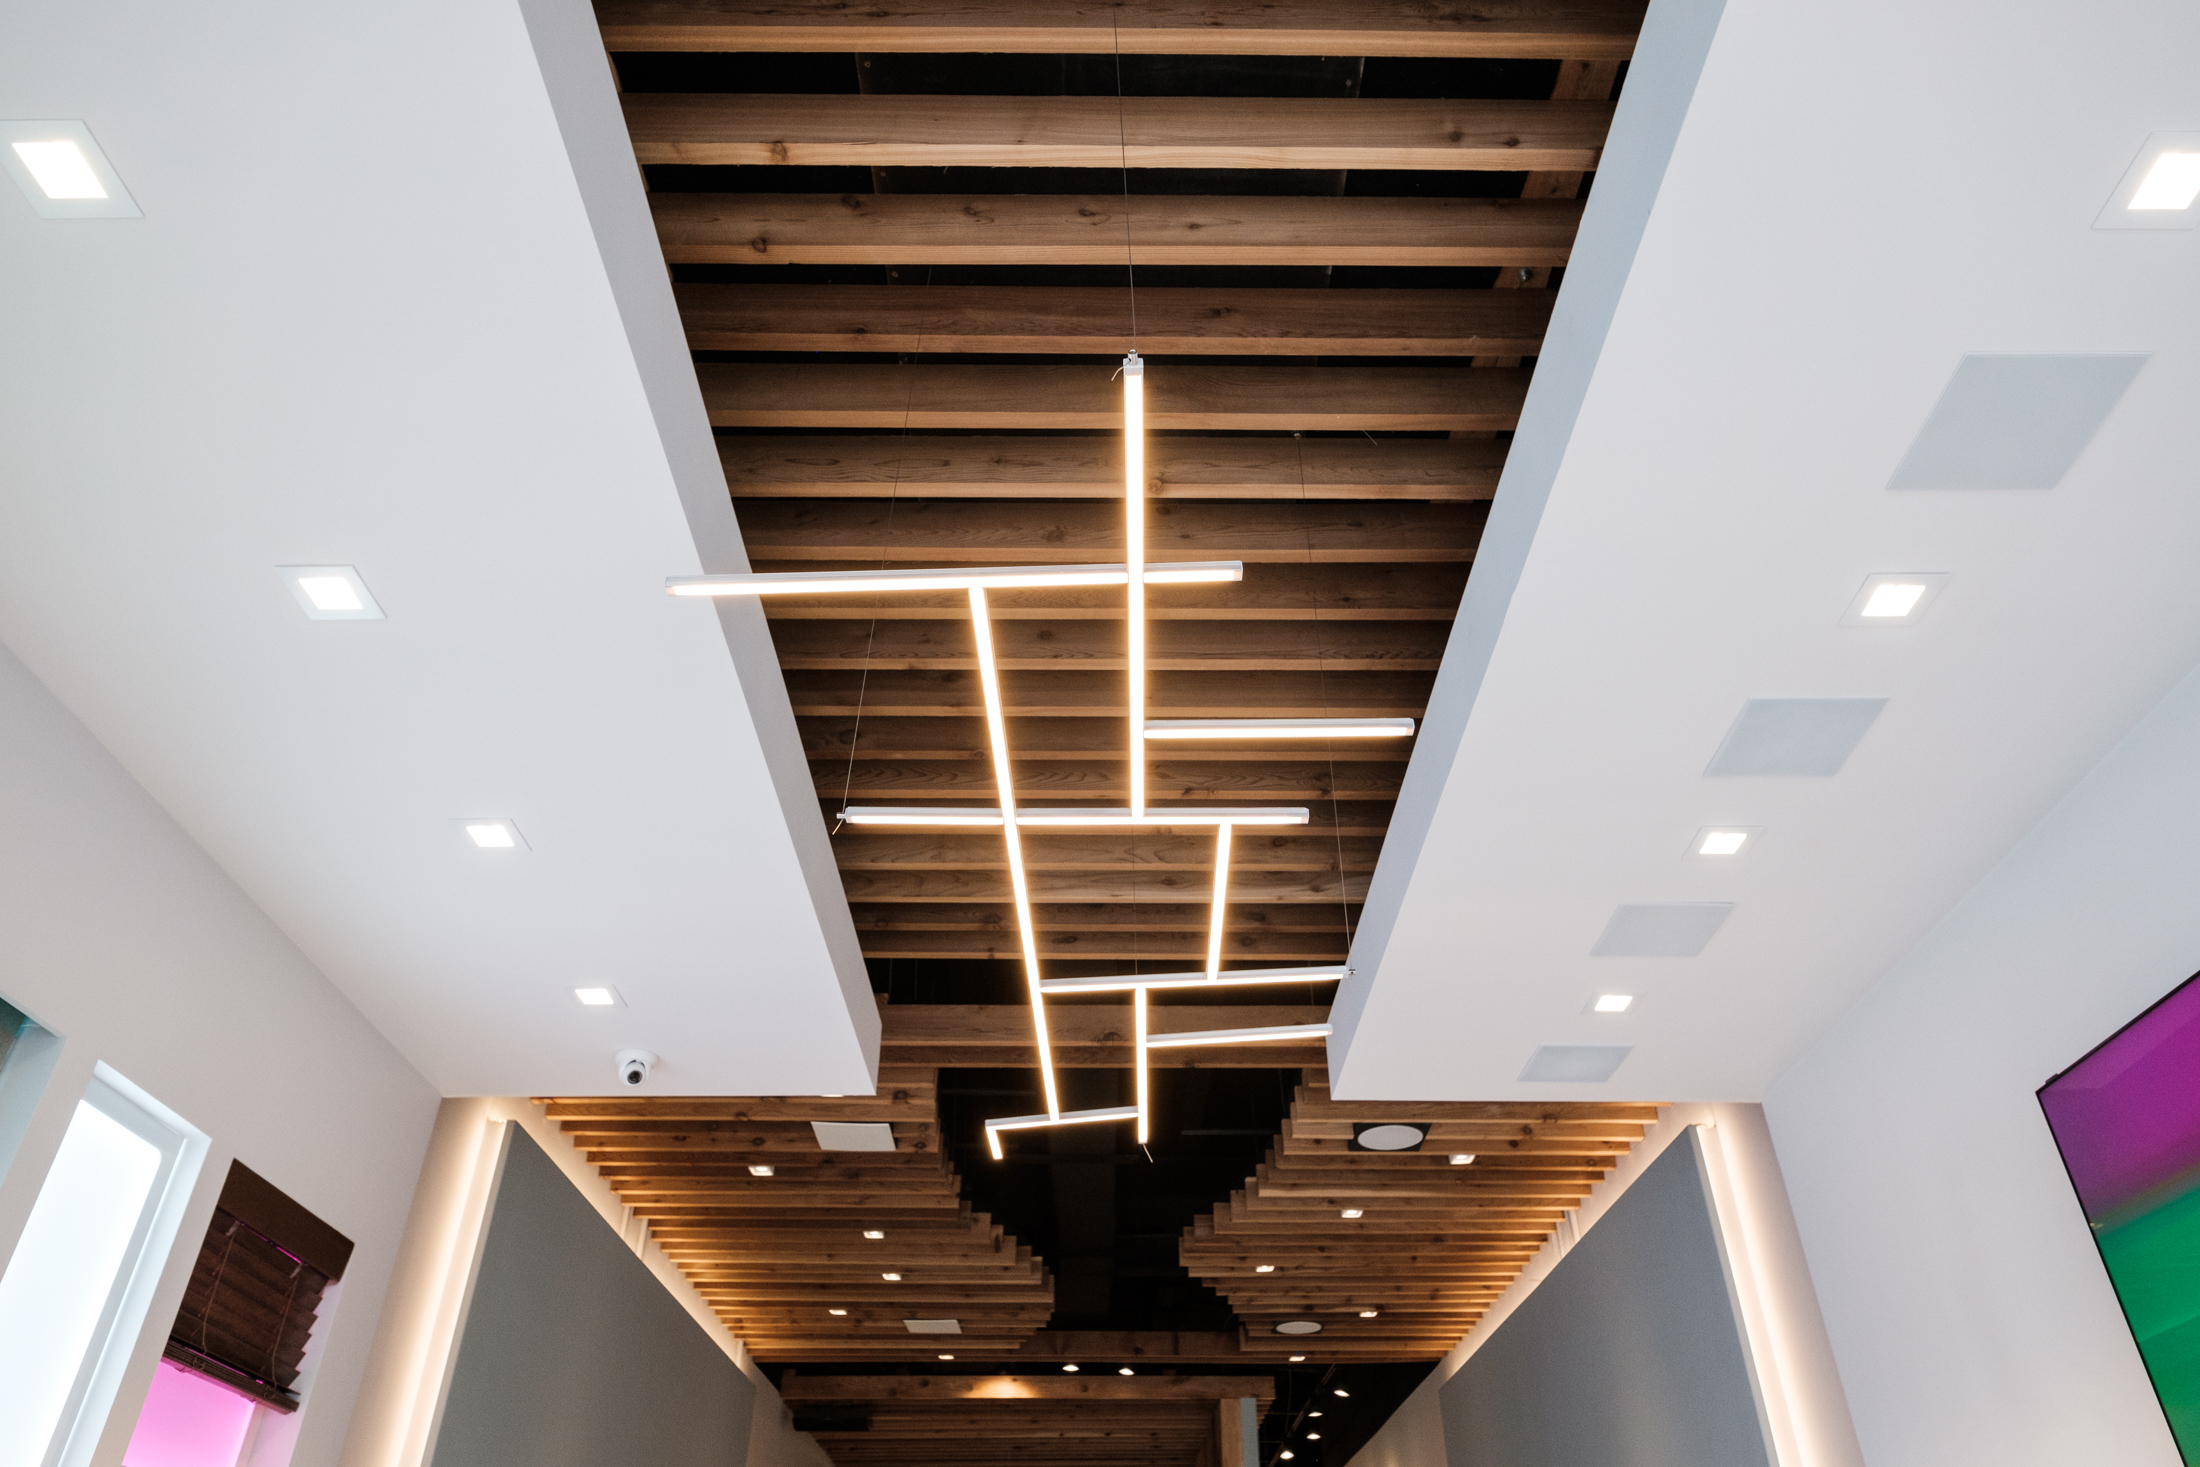 Maxicon showroom ceiling speakers and lighting